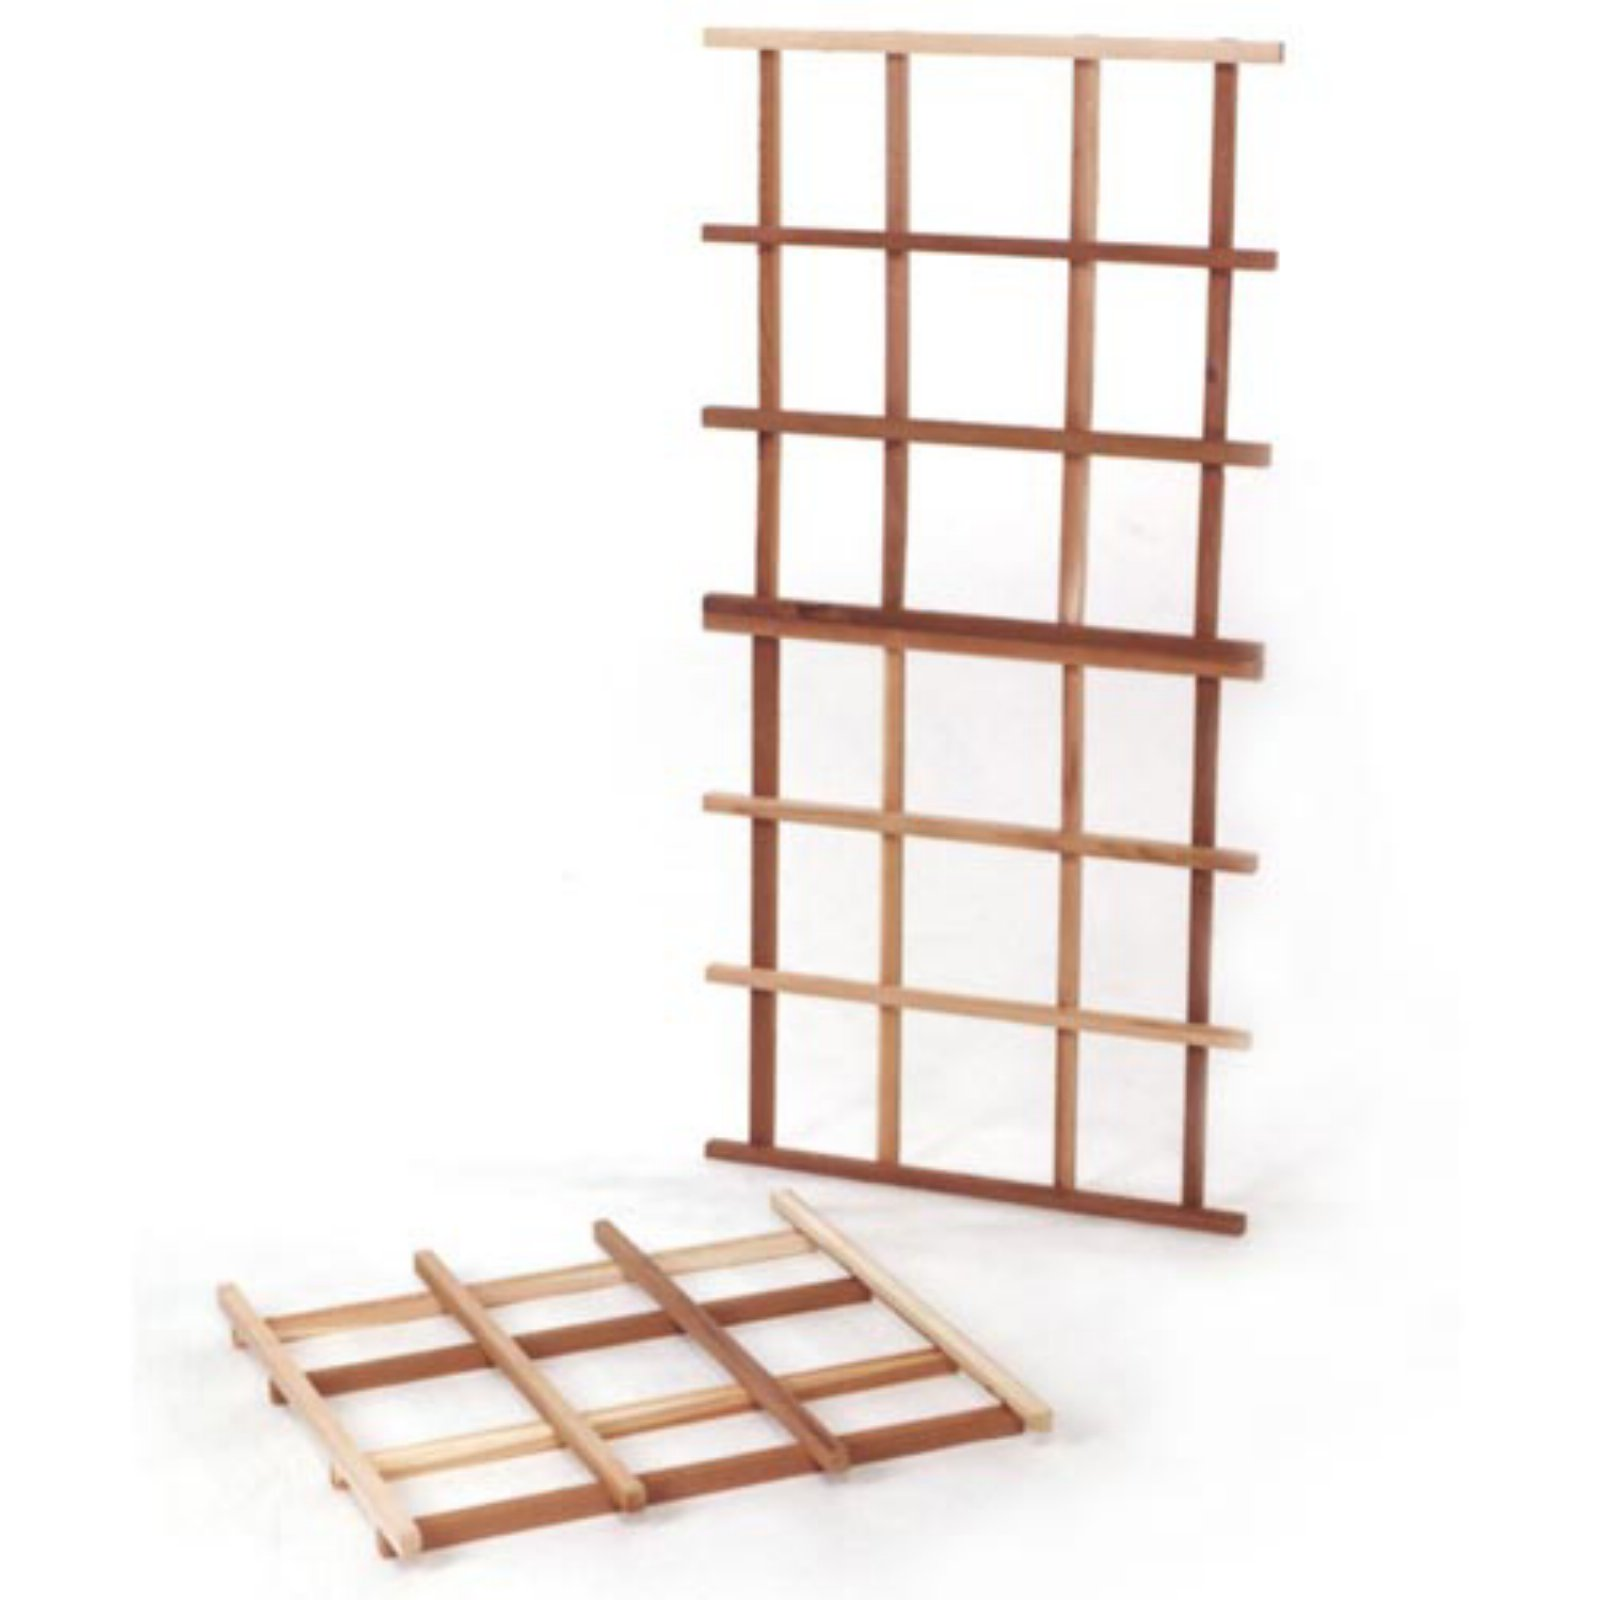 All Things Cedar Classic 1.75-ft. Cedar Wood Lattice Trellis Kit by All Things Cedar